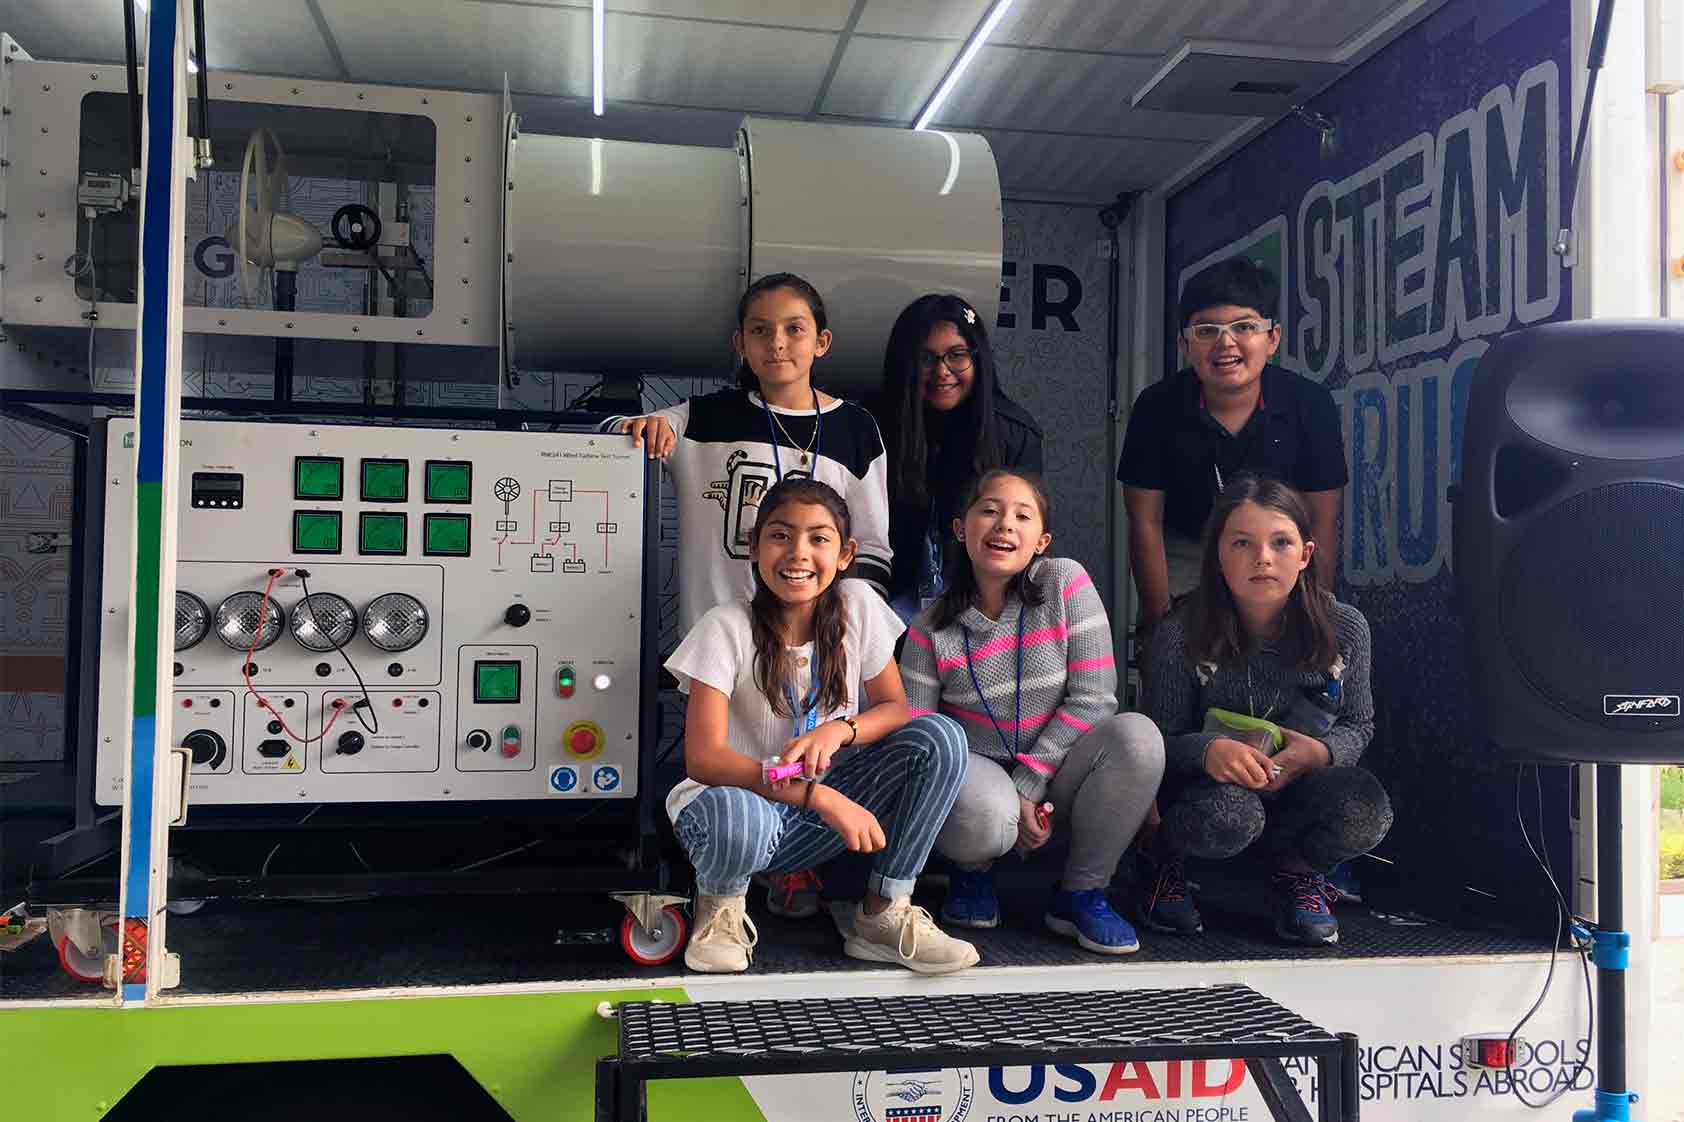 The STEAM truck visits USAID for an incredible family-event